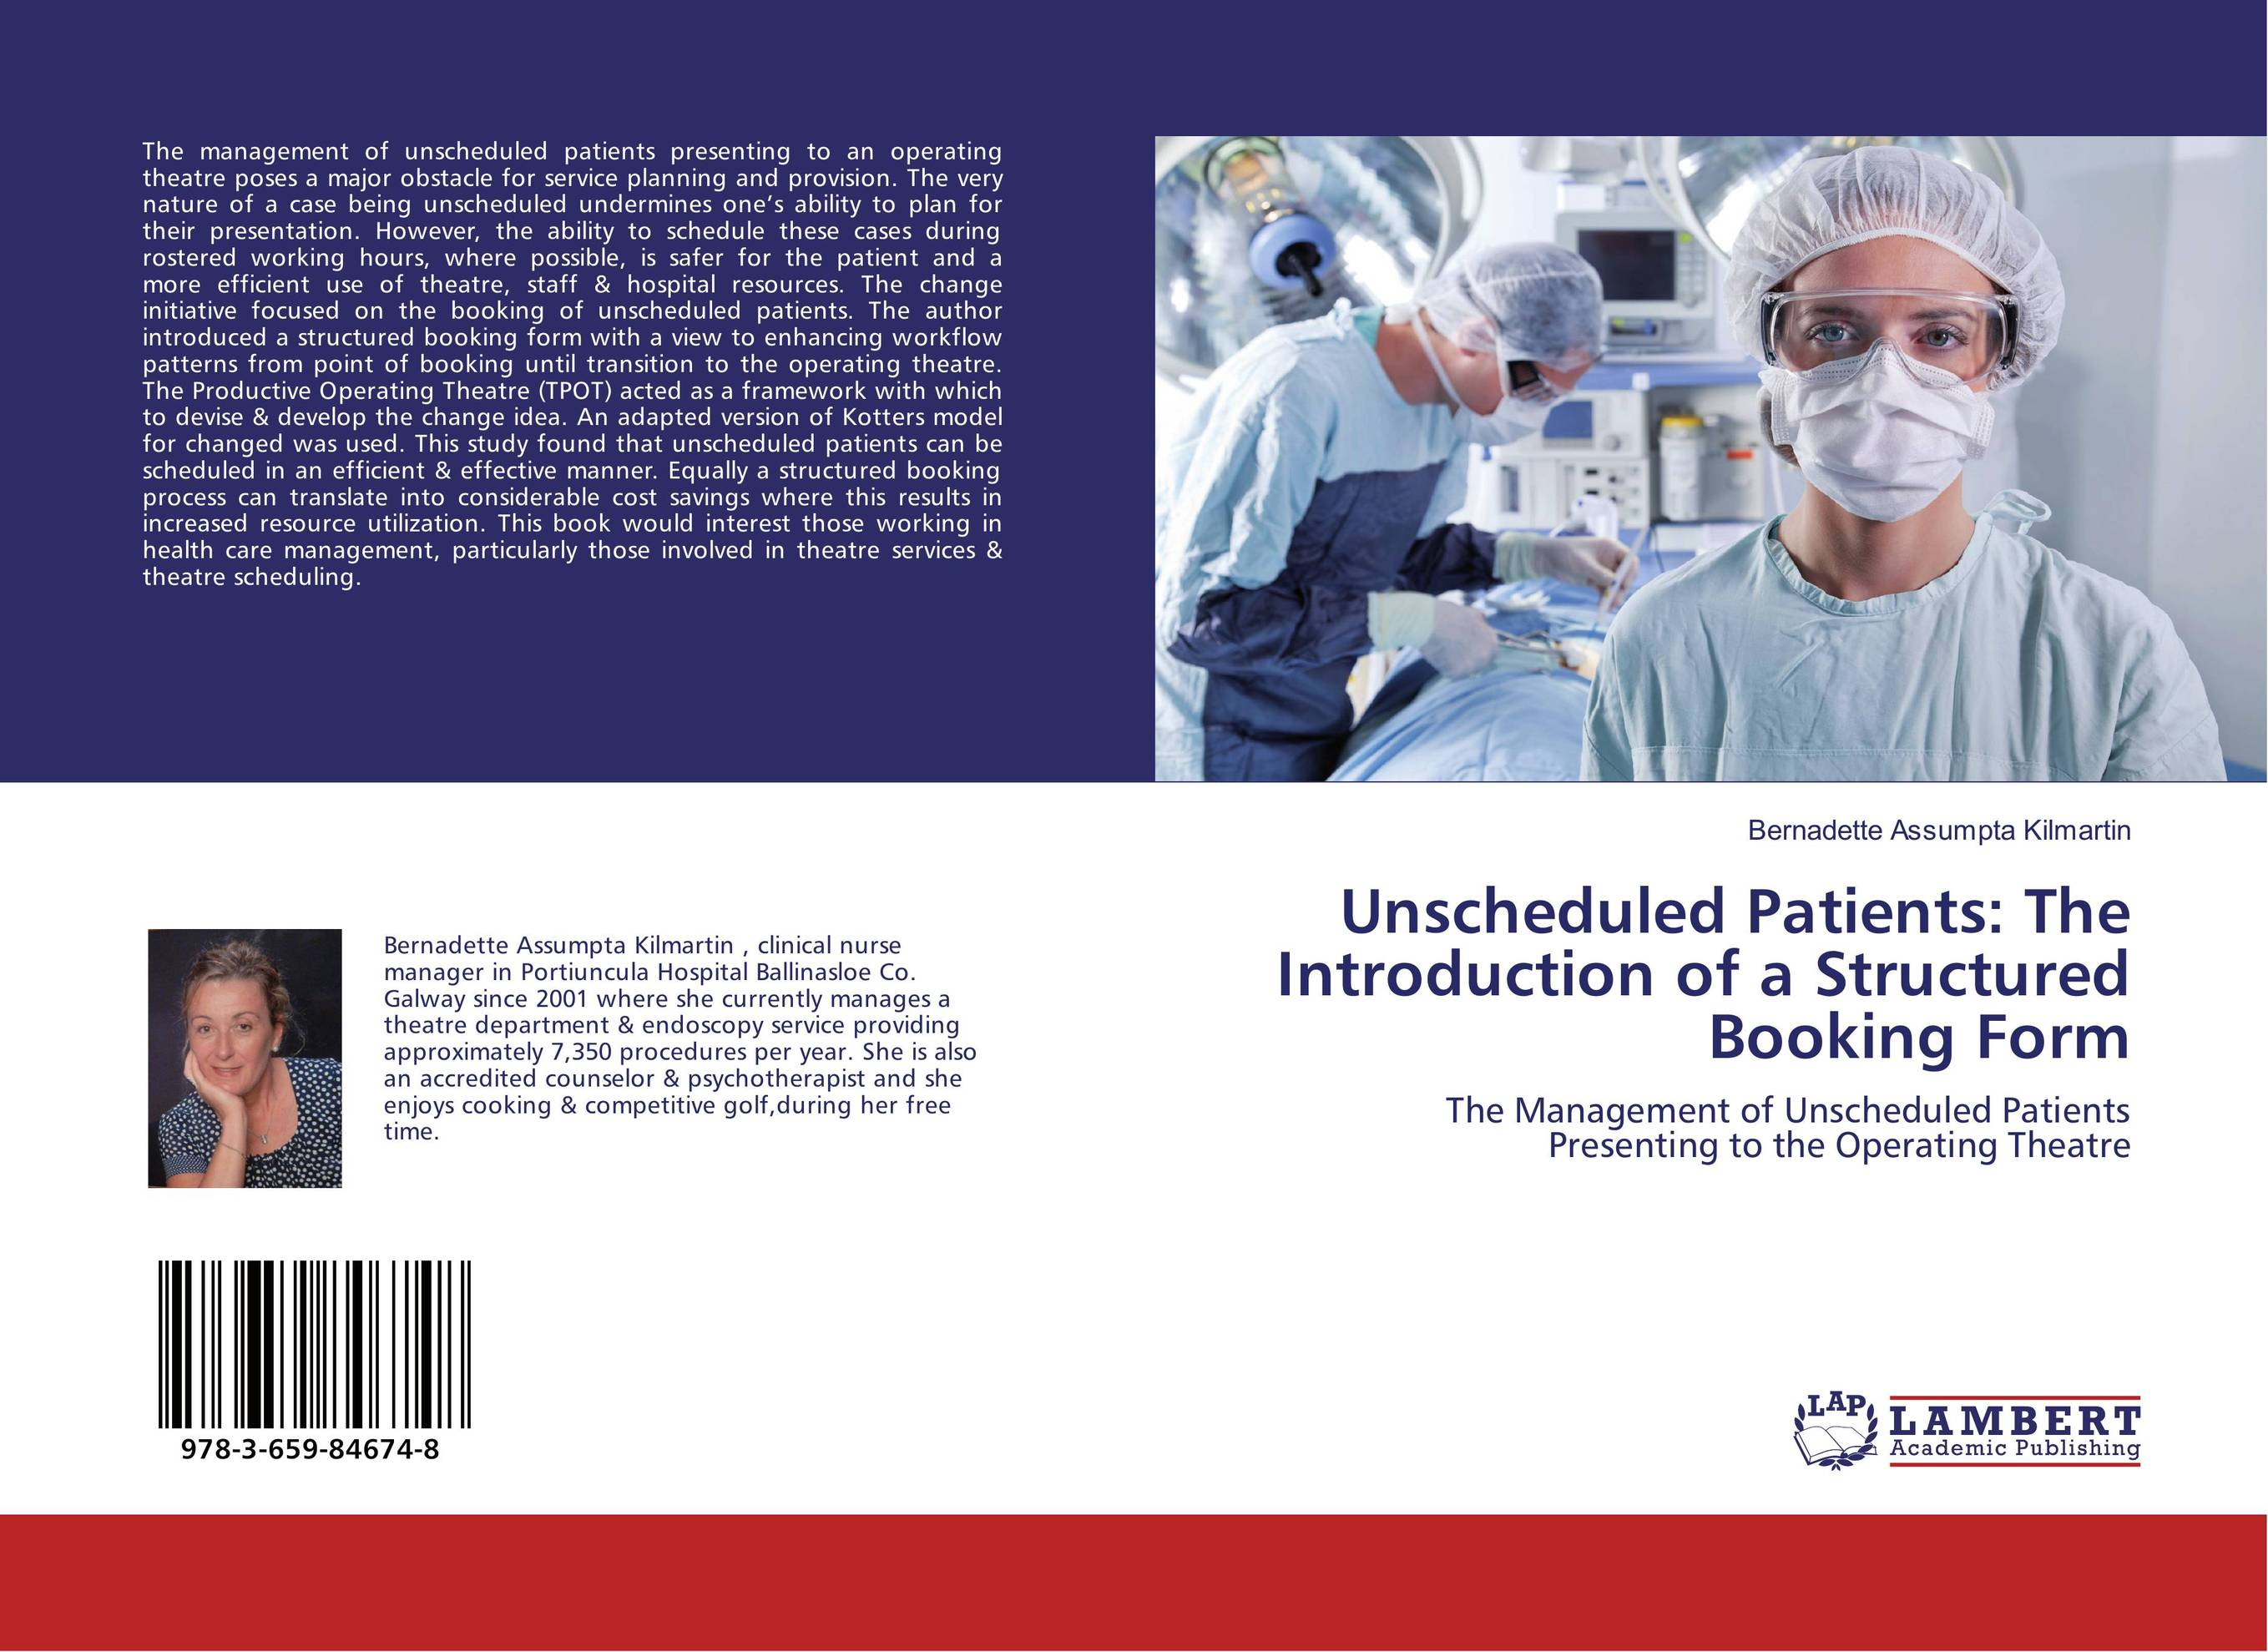 Unscheduled Patients: The Introduction of a Structured Booking Form